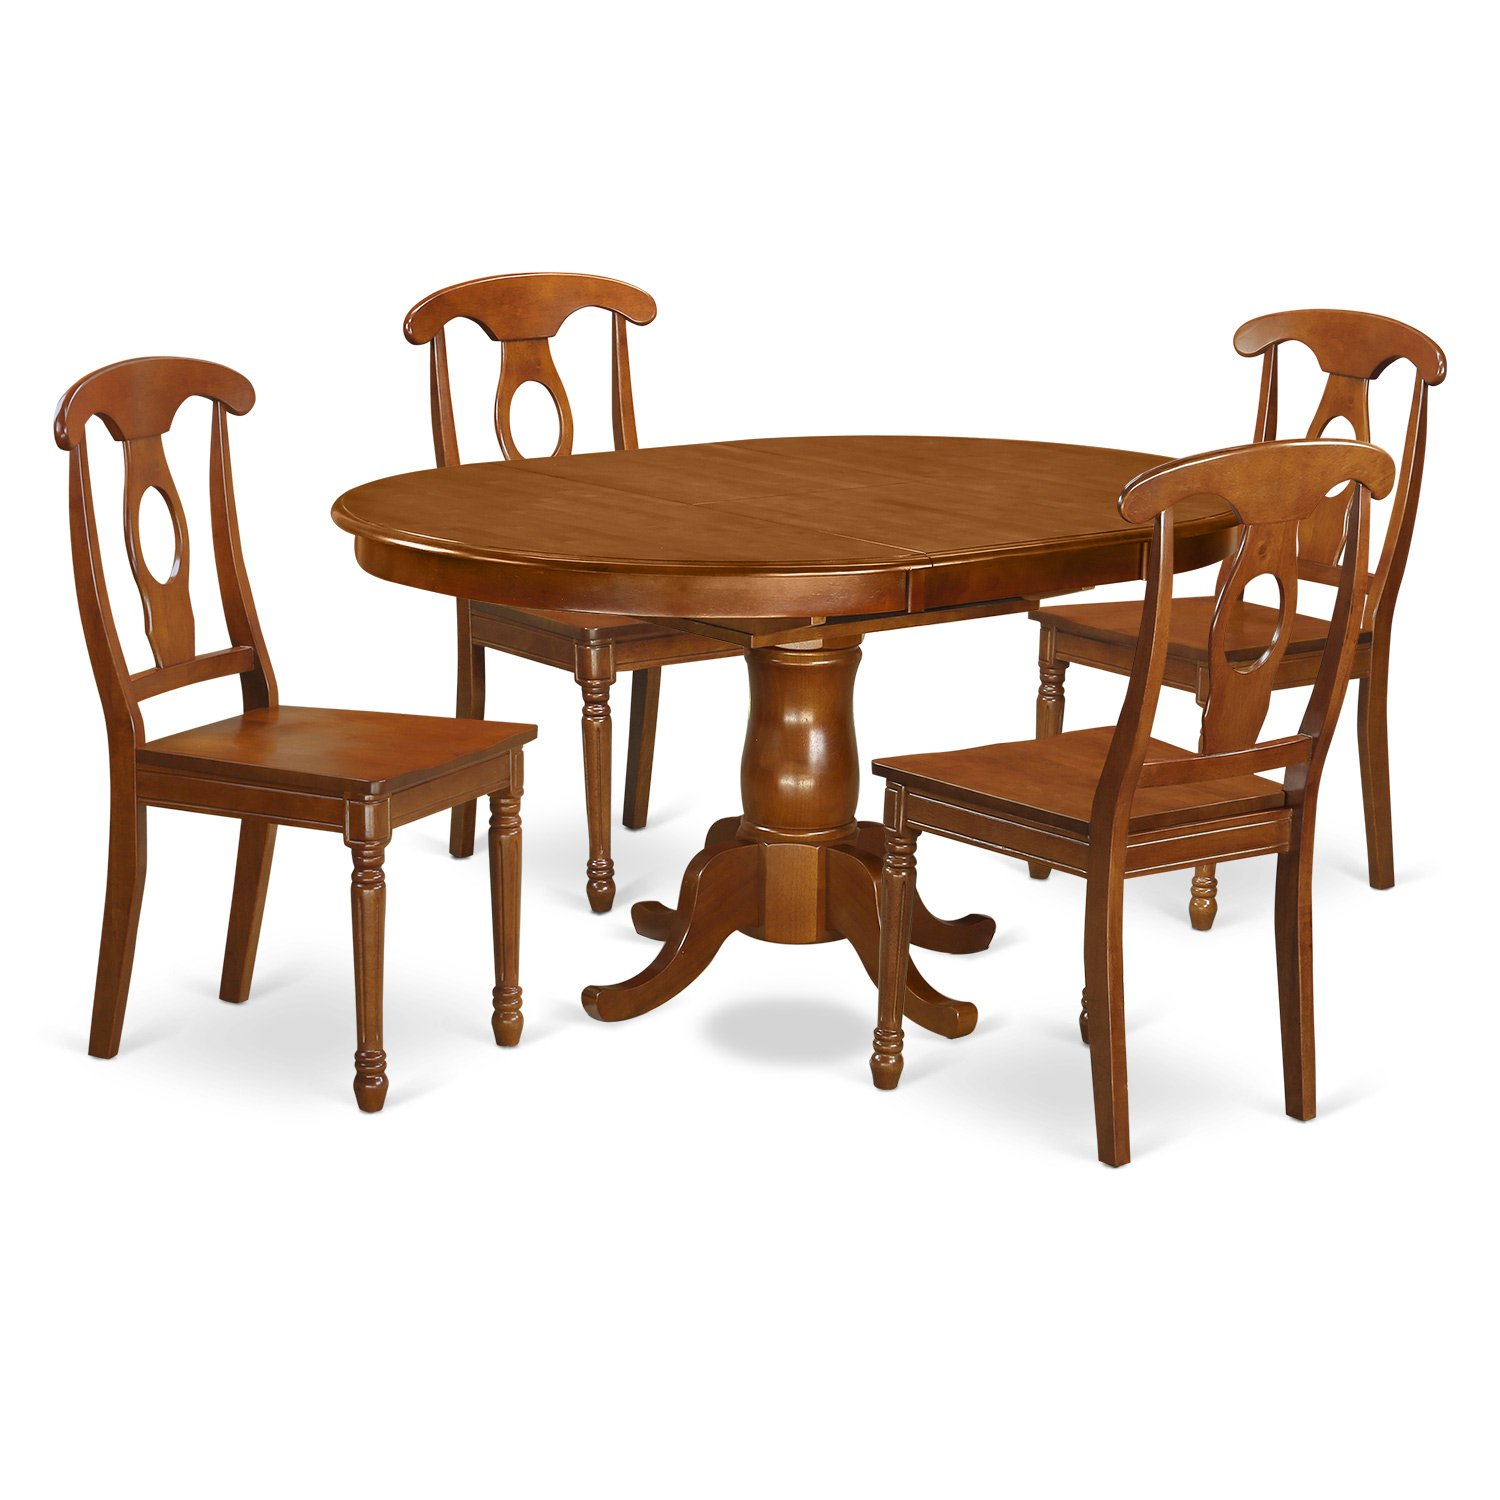 Amazon.com: East West Furniture pona5-sbr-c Juego de mesa de ...